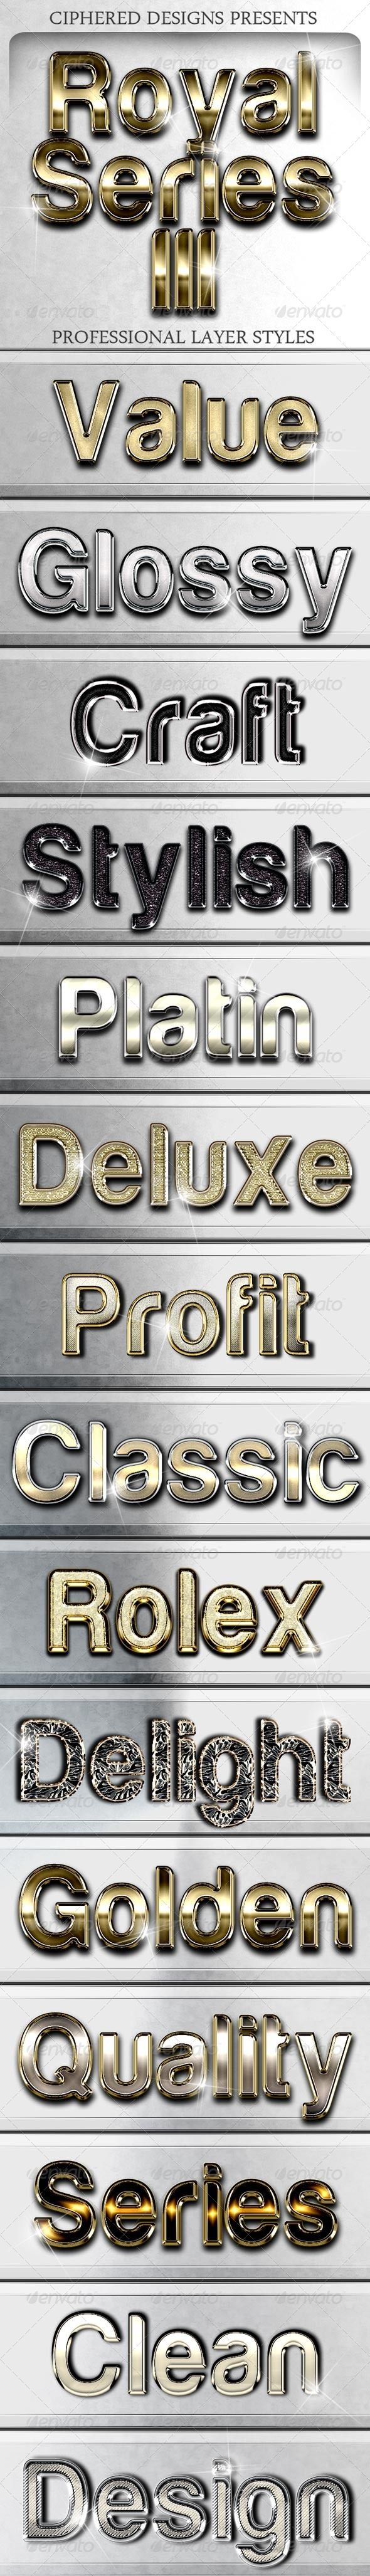 Royal Series III - Professional Layer Styles - Text Effects Styles